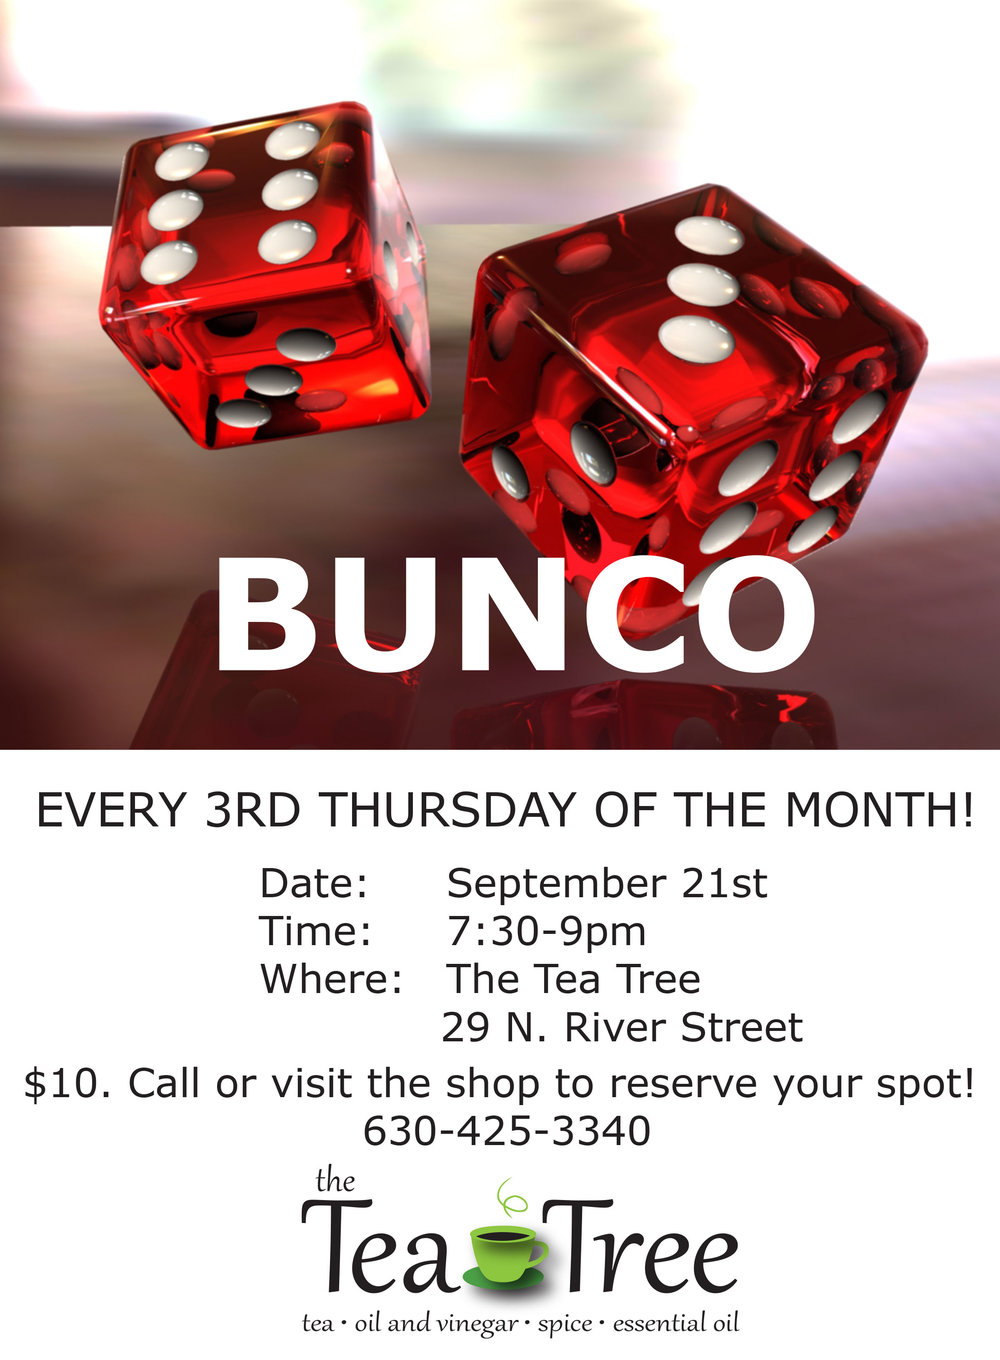 bunco invite.jpg